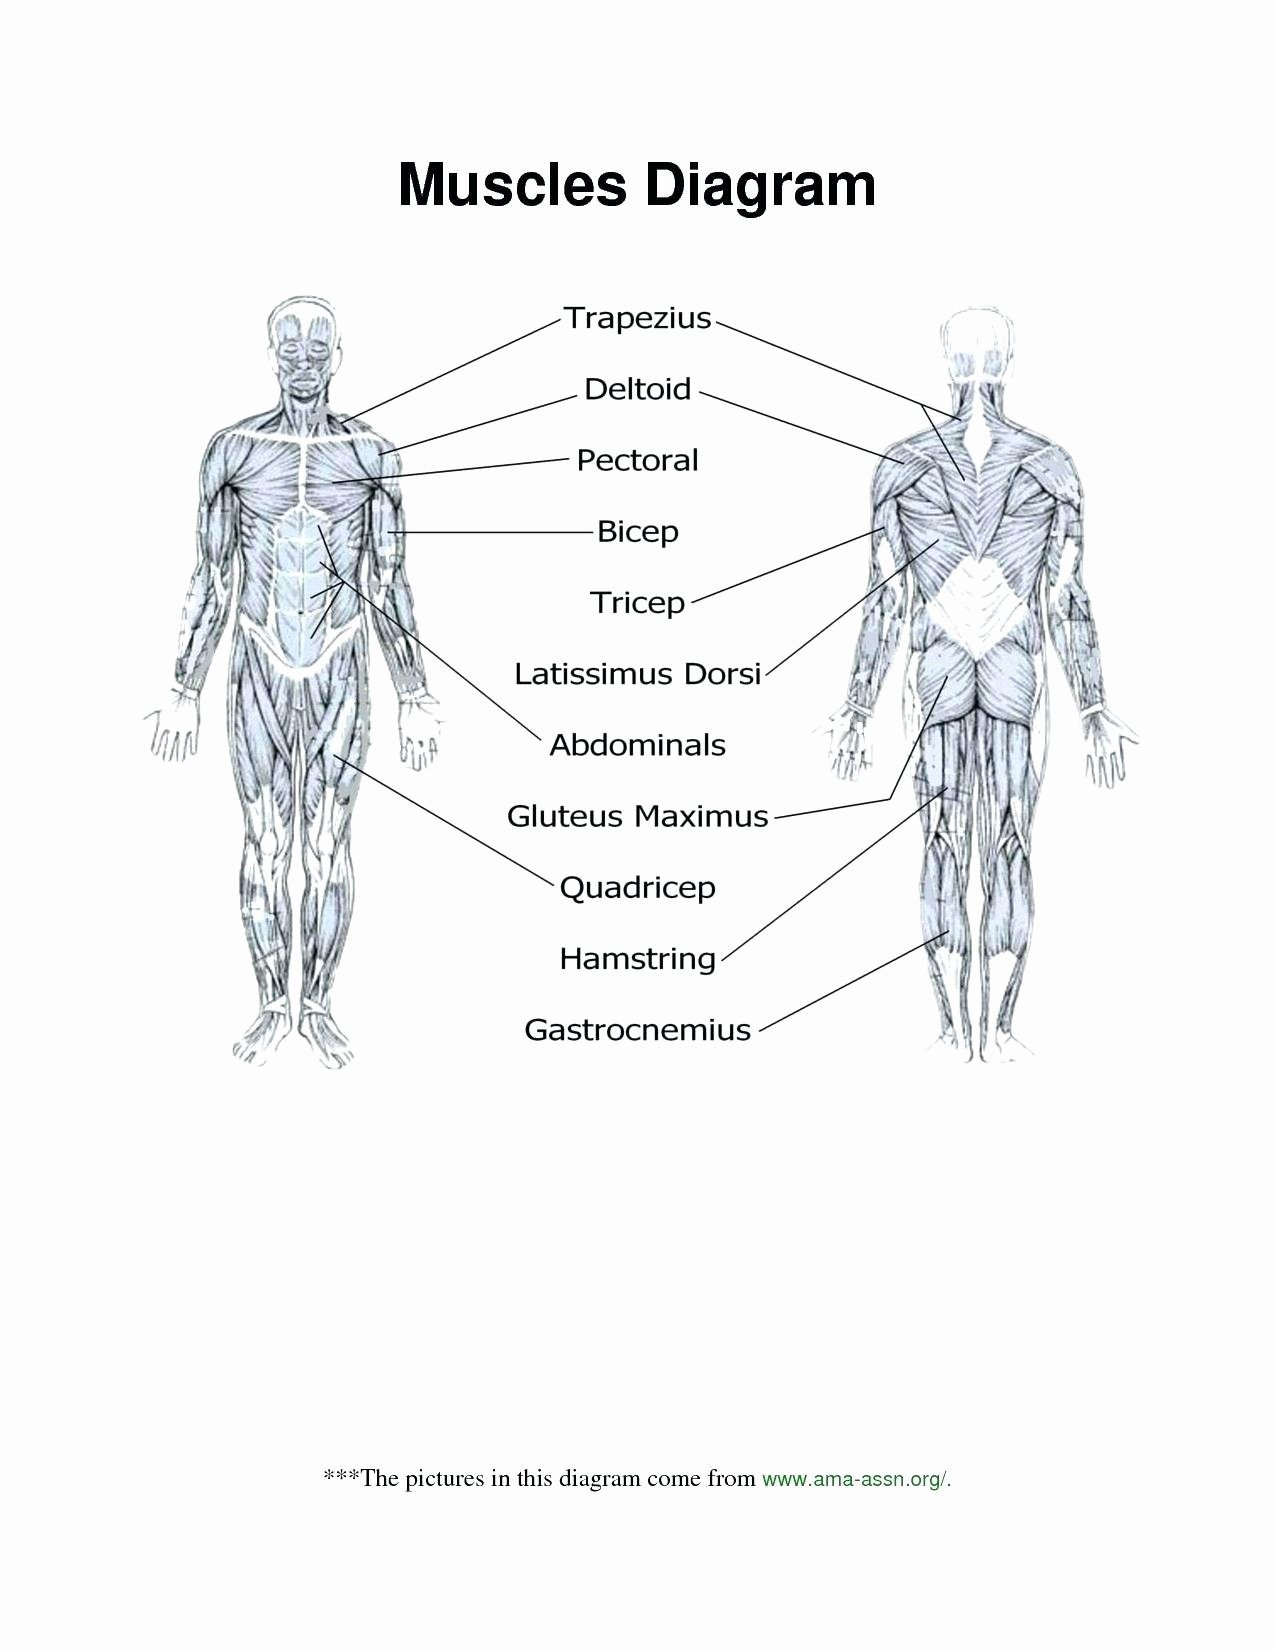 the skeletal system worksheet beautiful muscular system diagram worksheet answers of the skeletal system worksheet